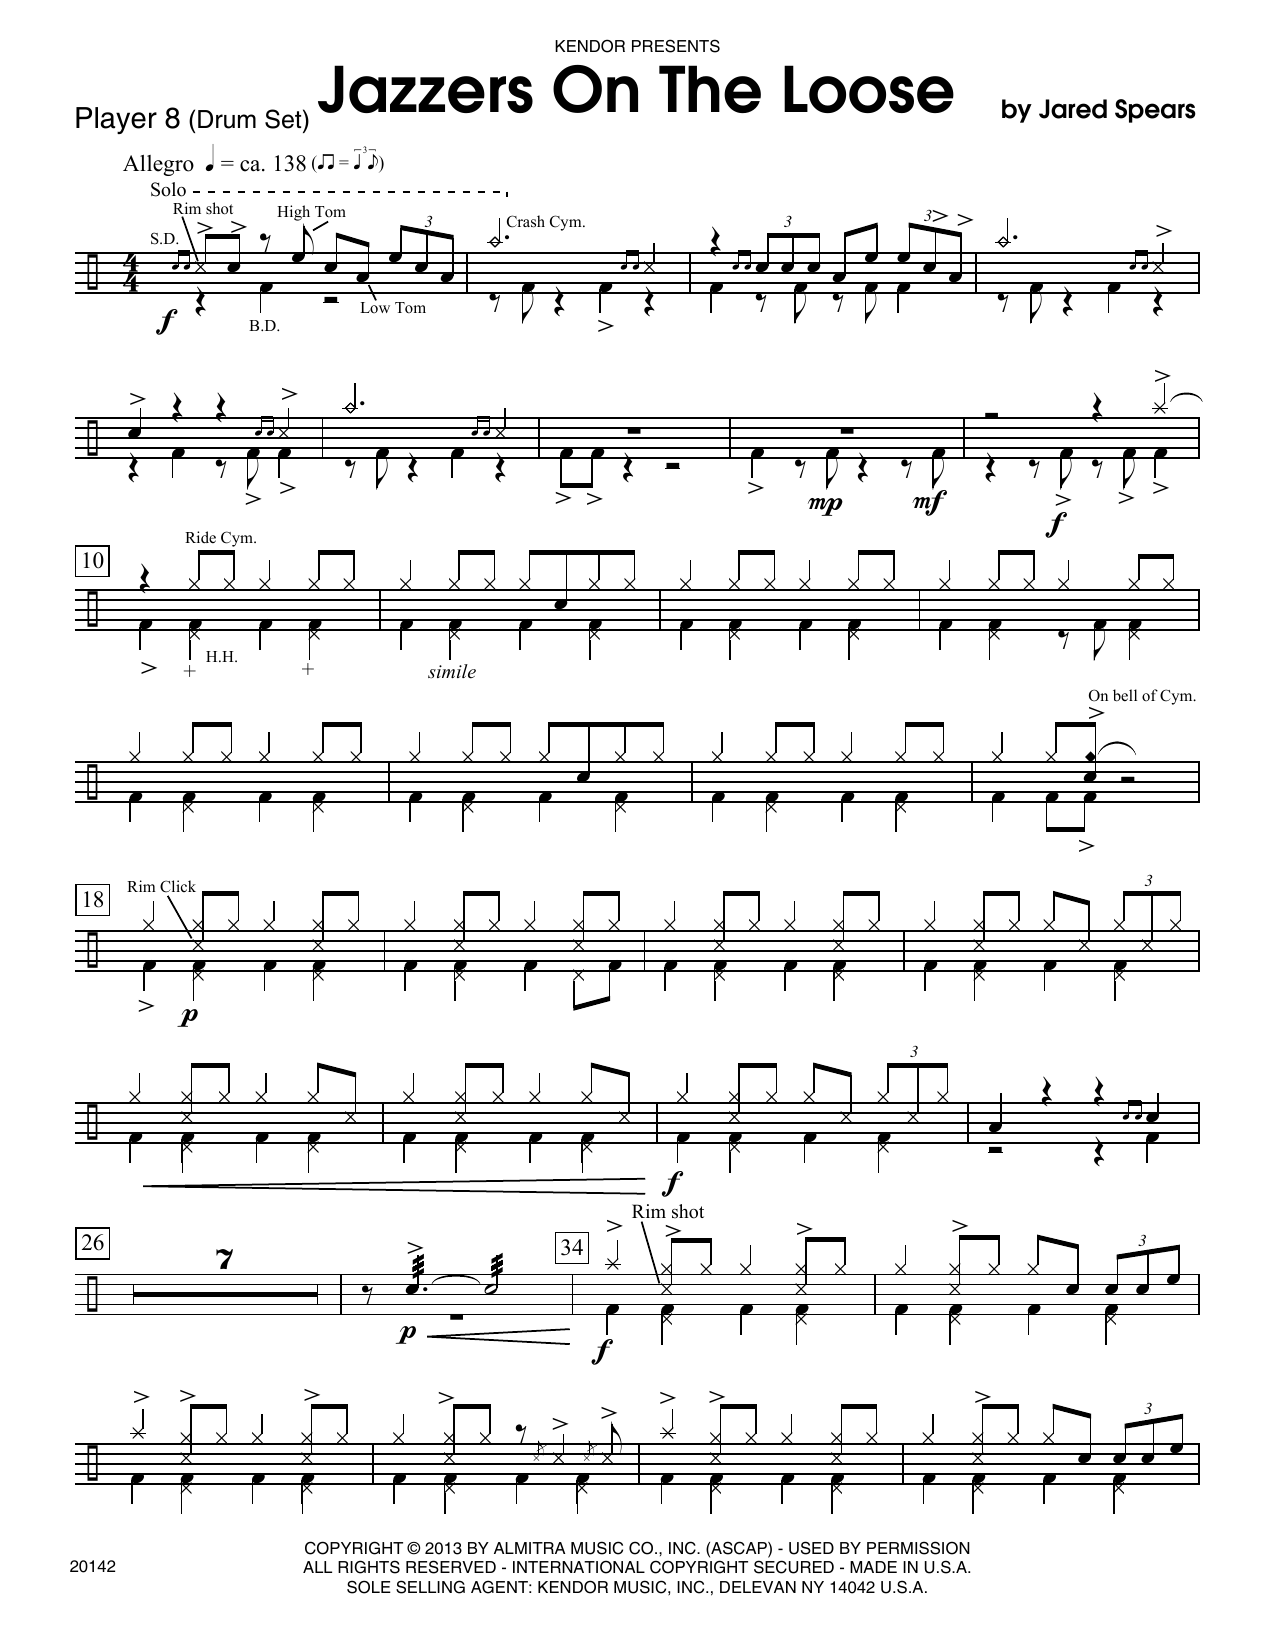 Jazzers On The Loose - Drum Set Sheet Music